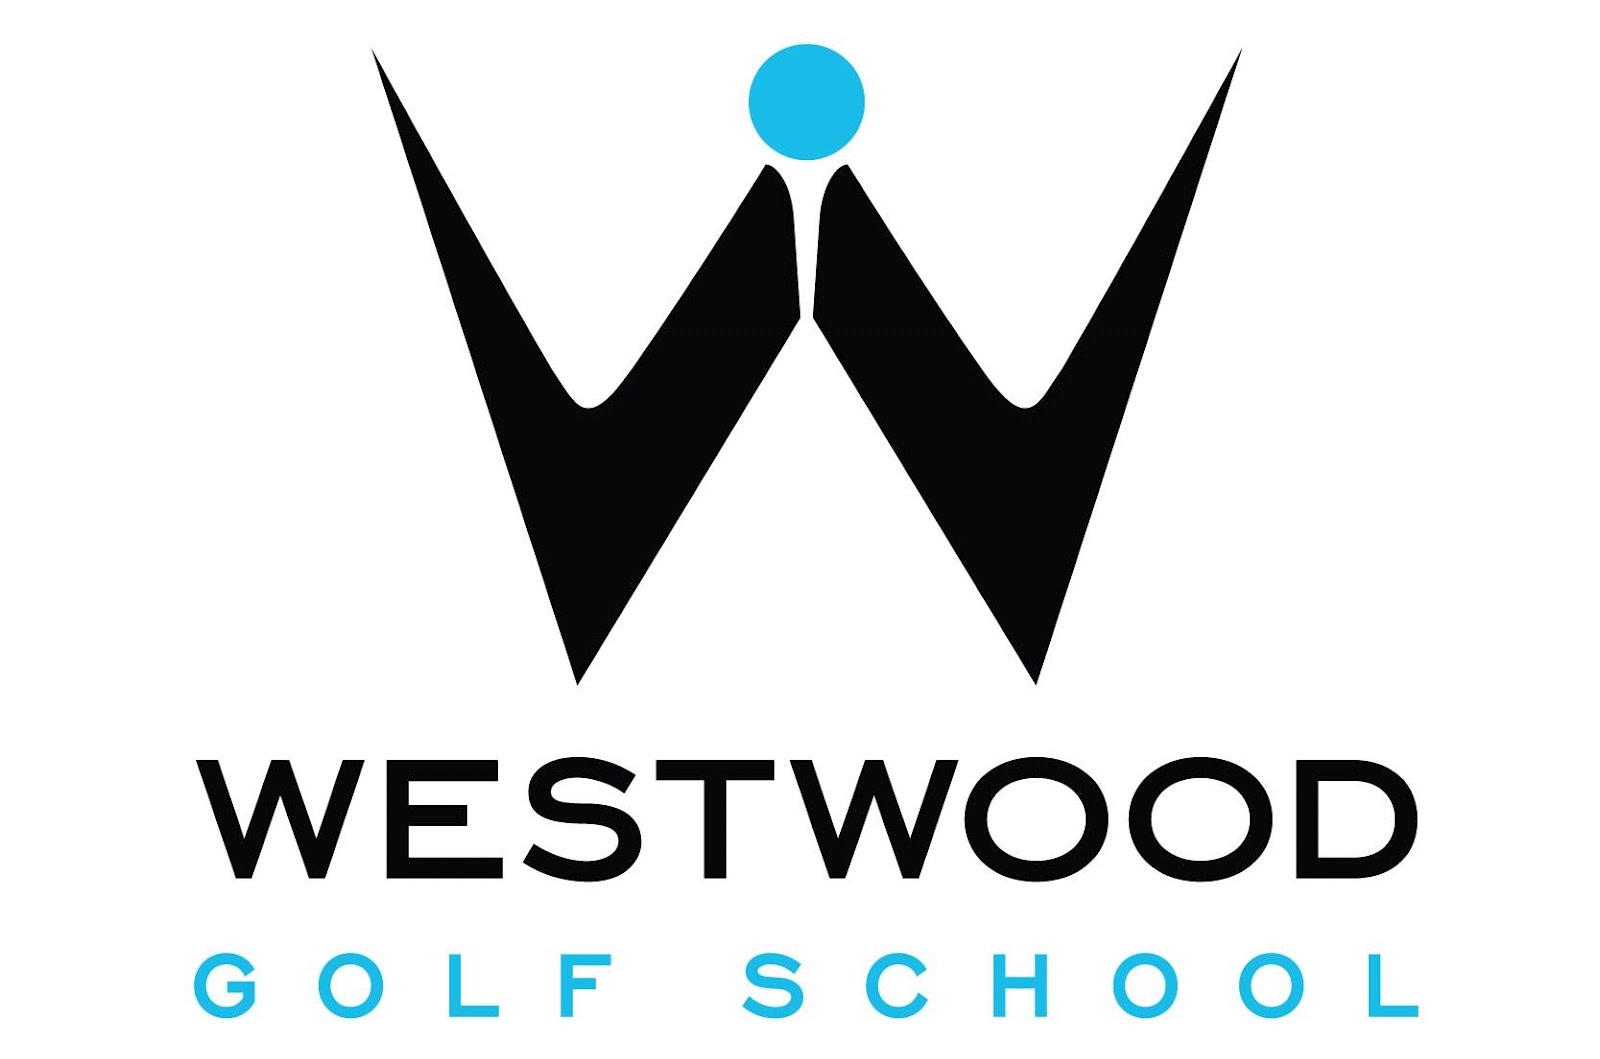 Lee Westwood cuts ties with Lee Westwood Golf School